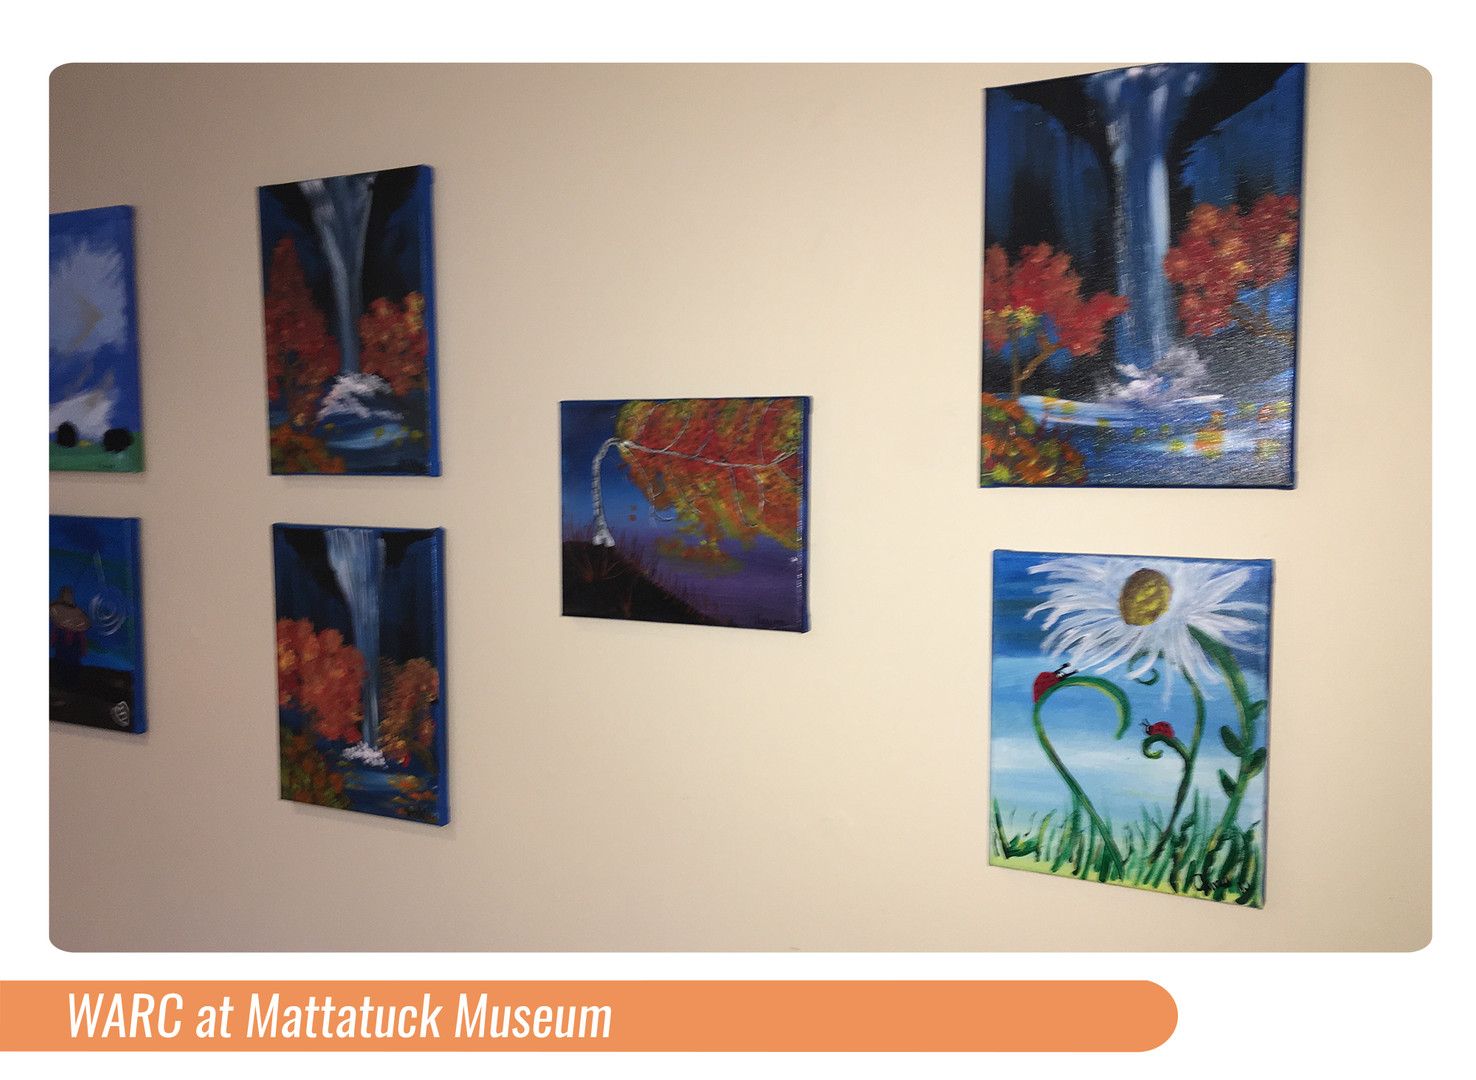 WARC at Mattatuck Museum